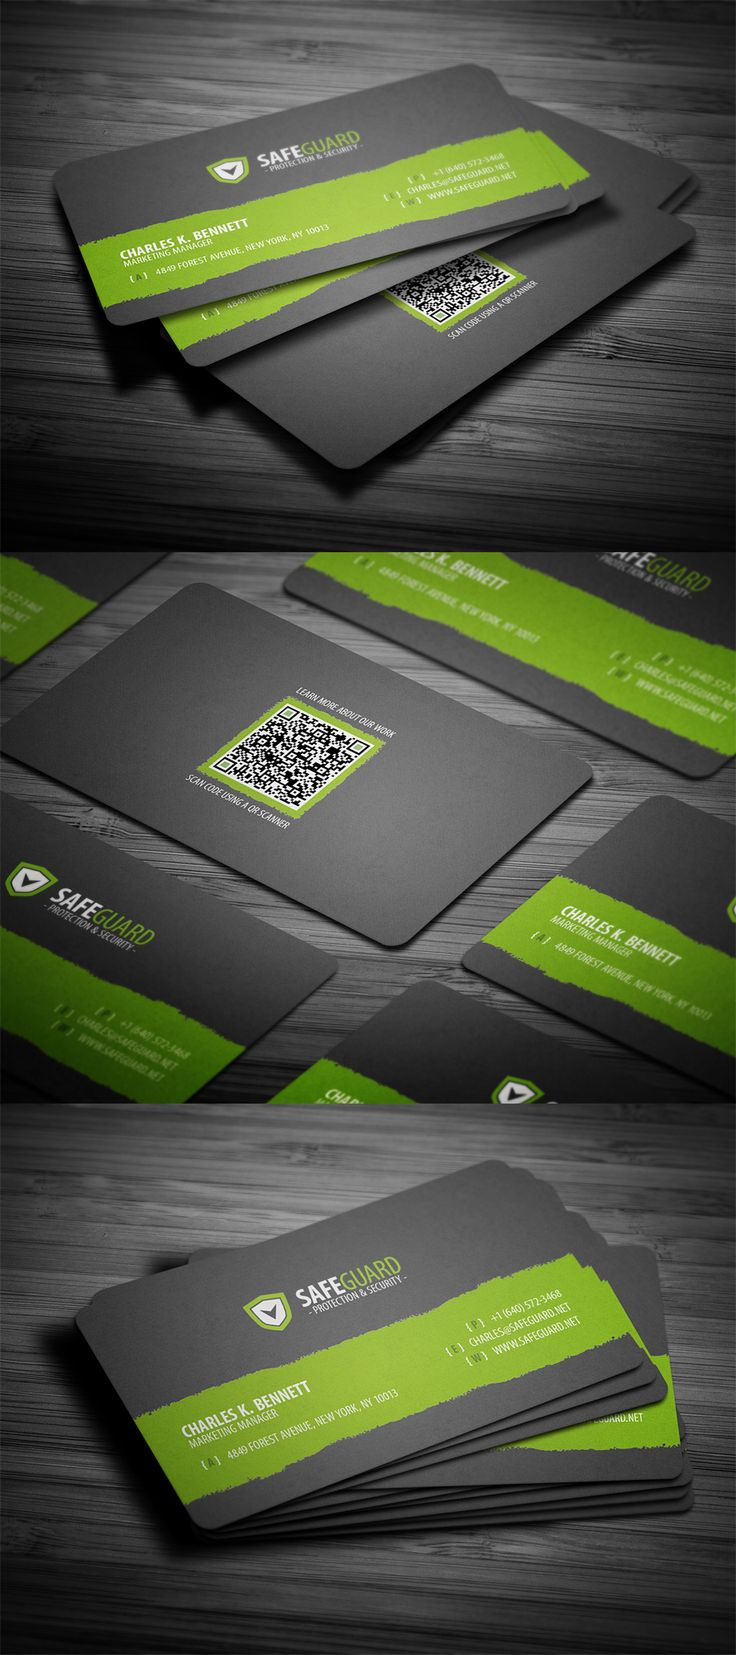 Simple rounded business card template with QR code, available for free download in PSD format with following features: dimensions 3.5 x 2 inches, 300 dpi high resolution, and CMYK color settings.